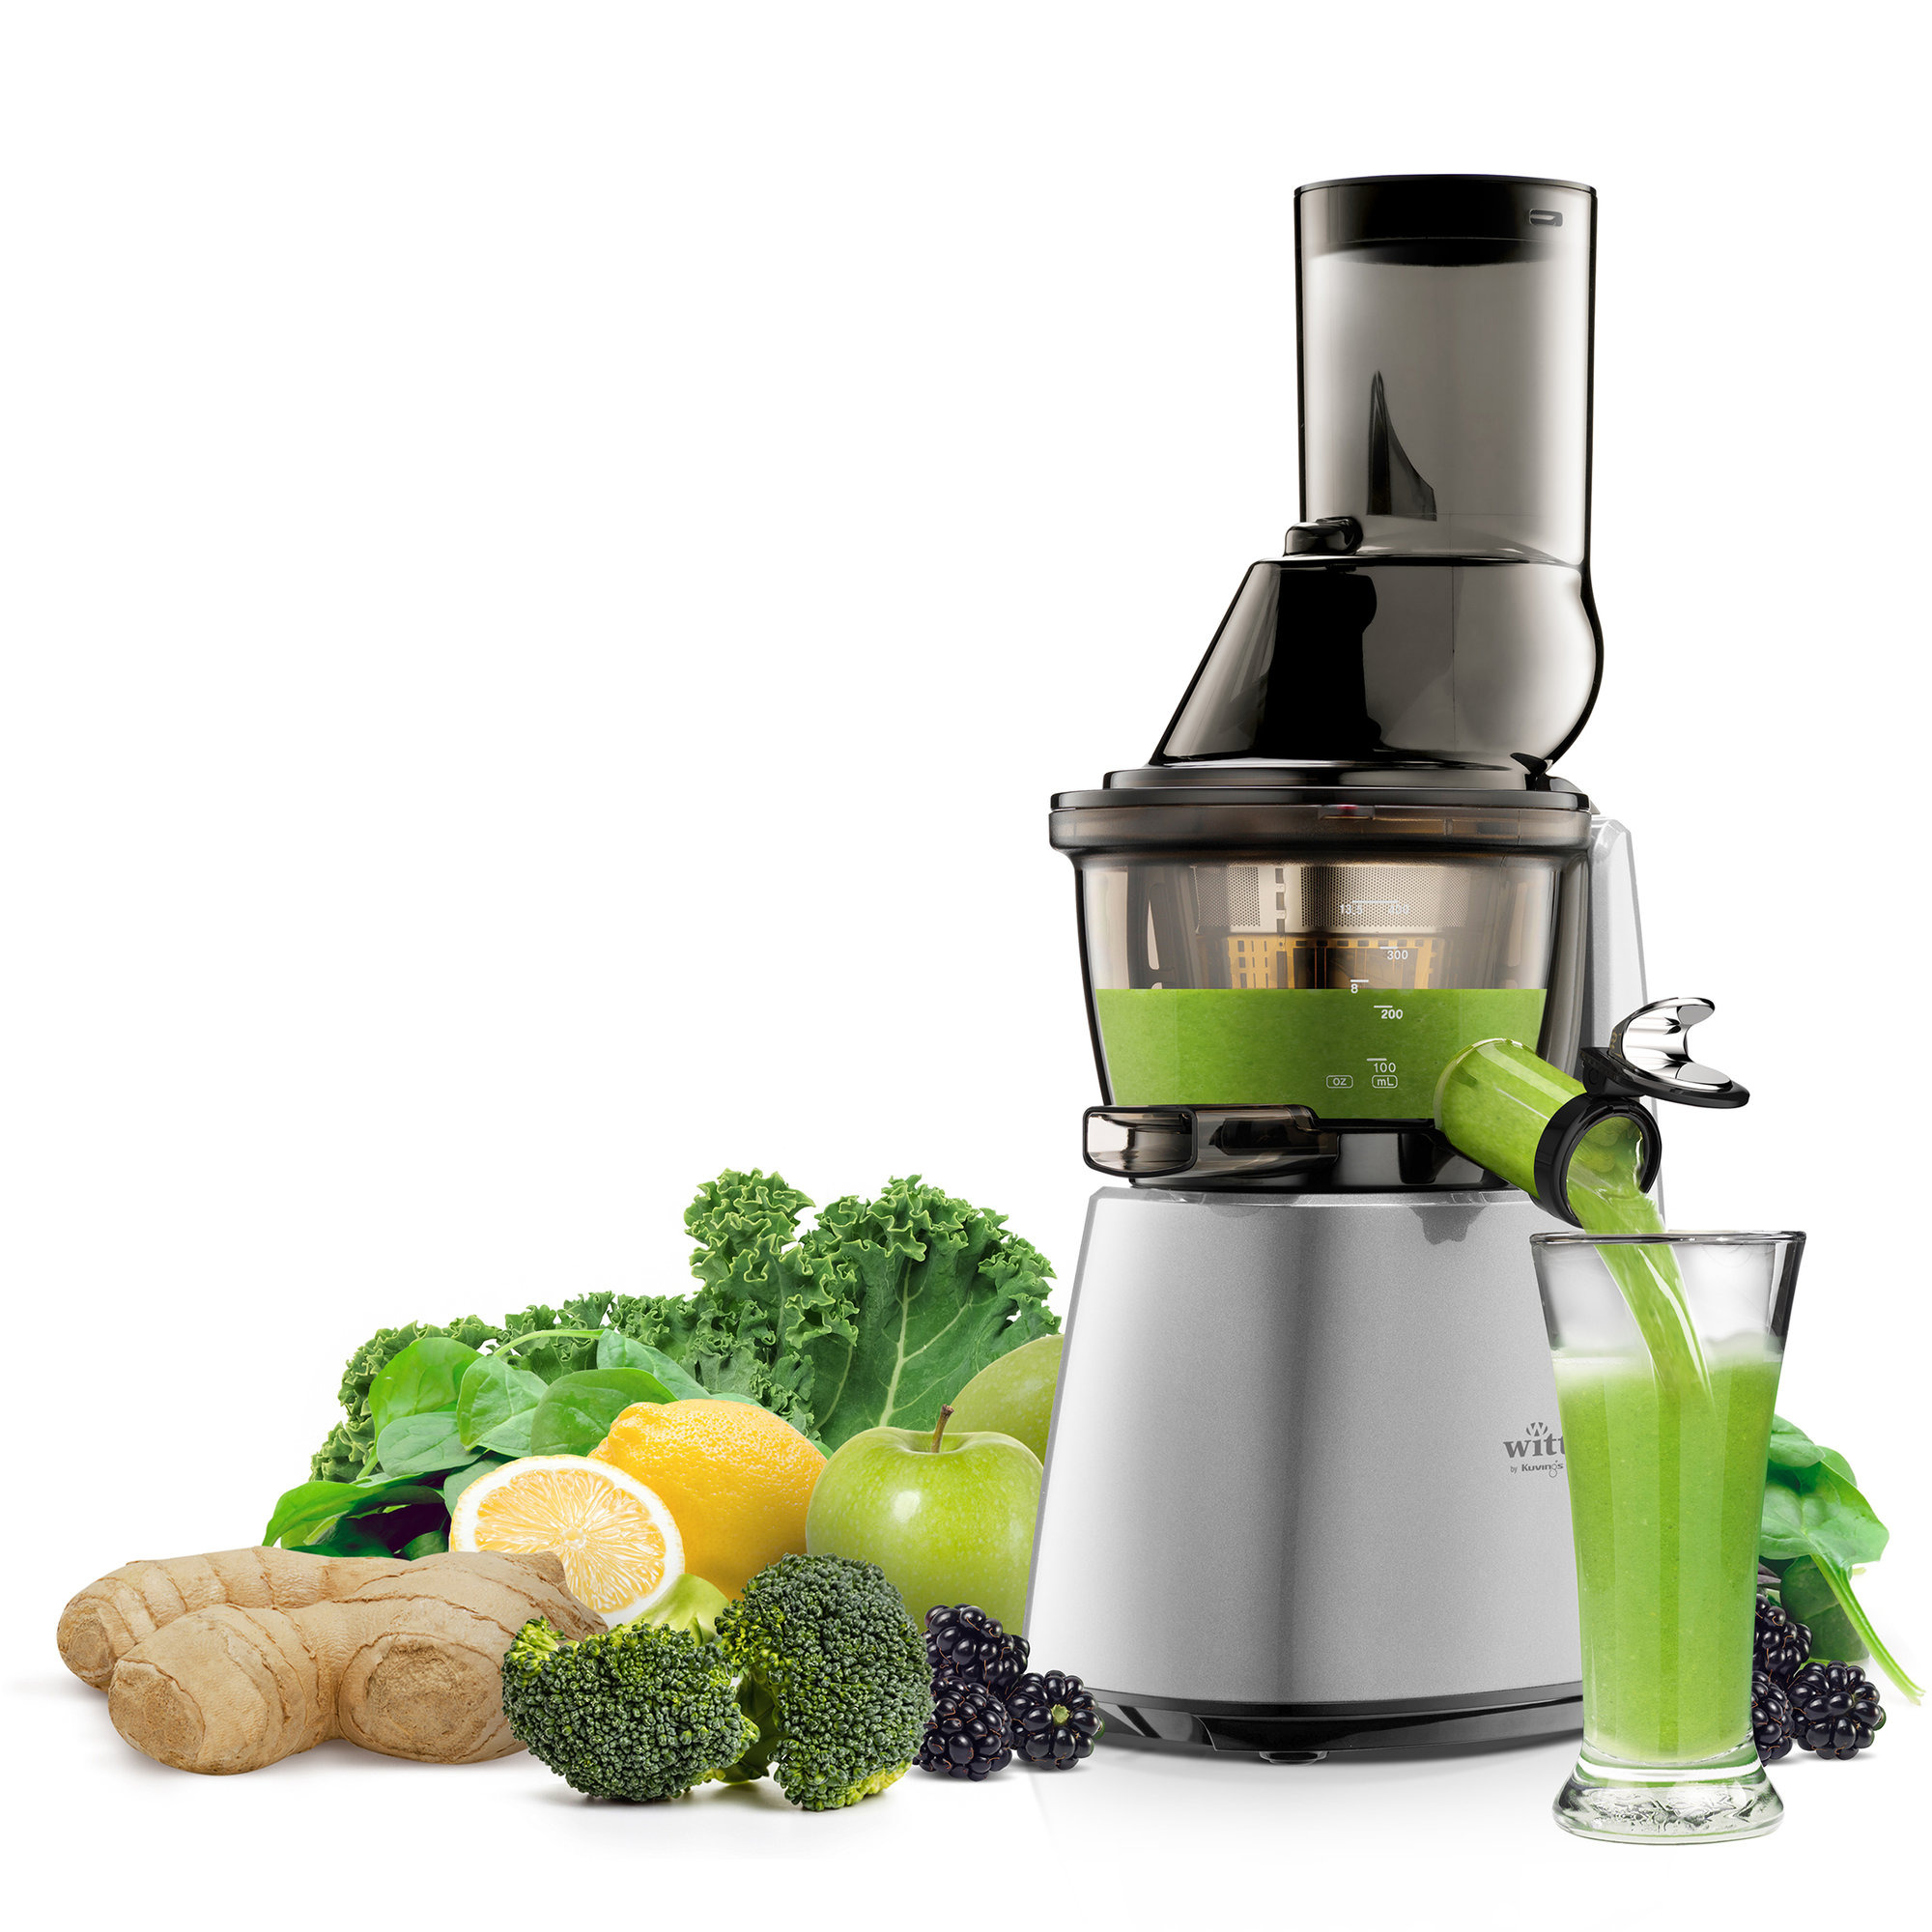 Best?ll C9600 S Slow Juicer silver fran Witt by Kuvings